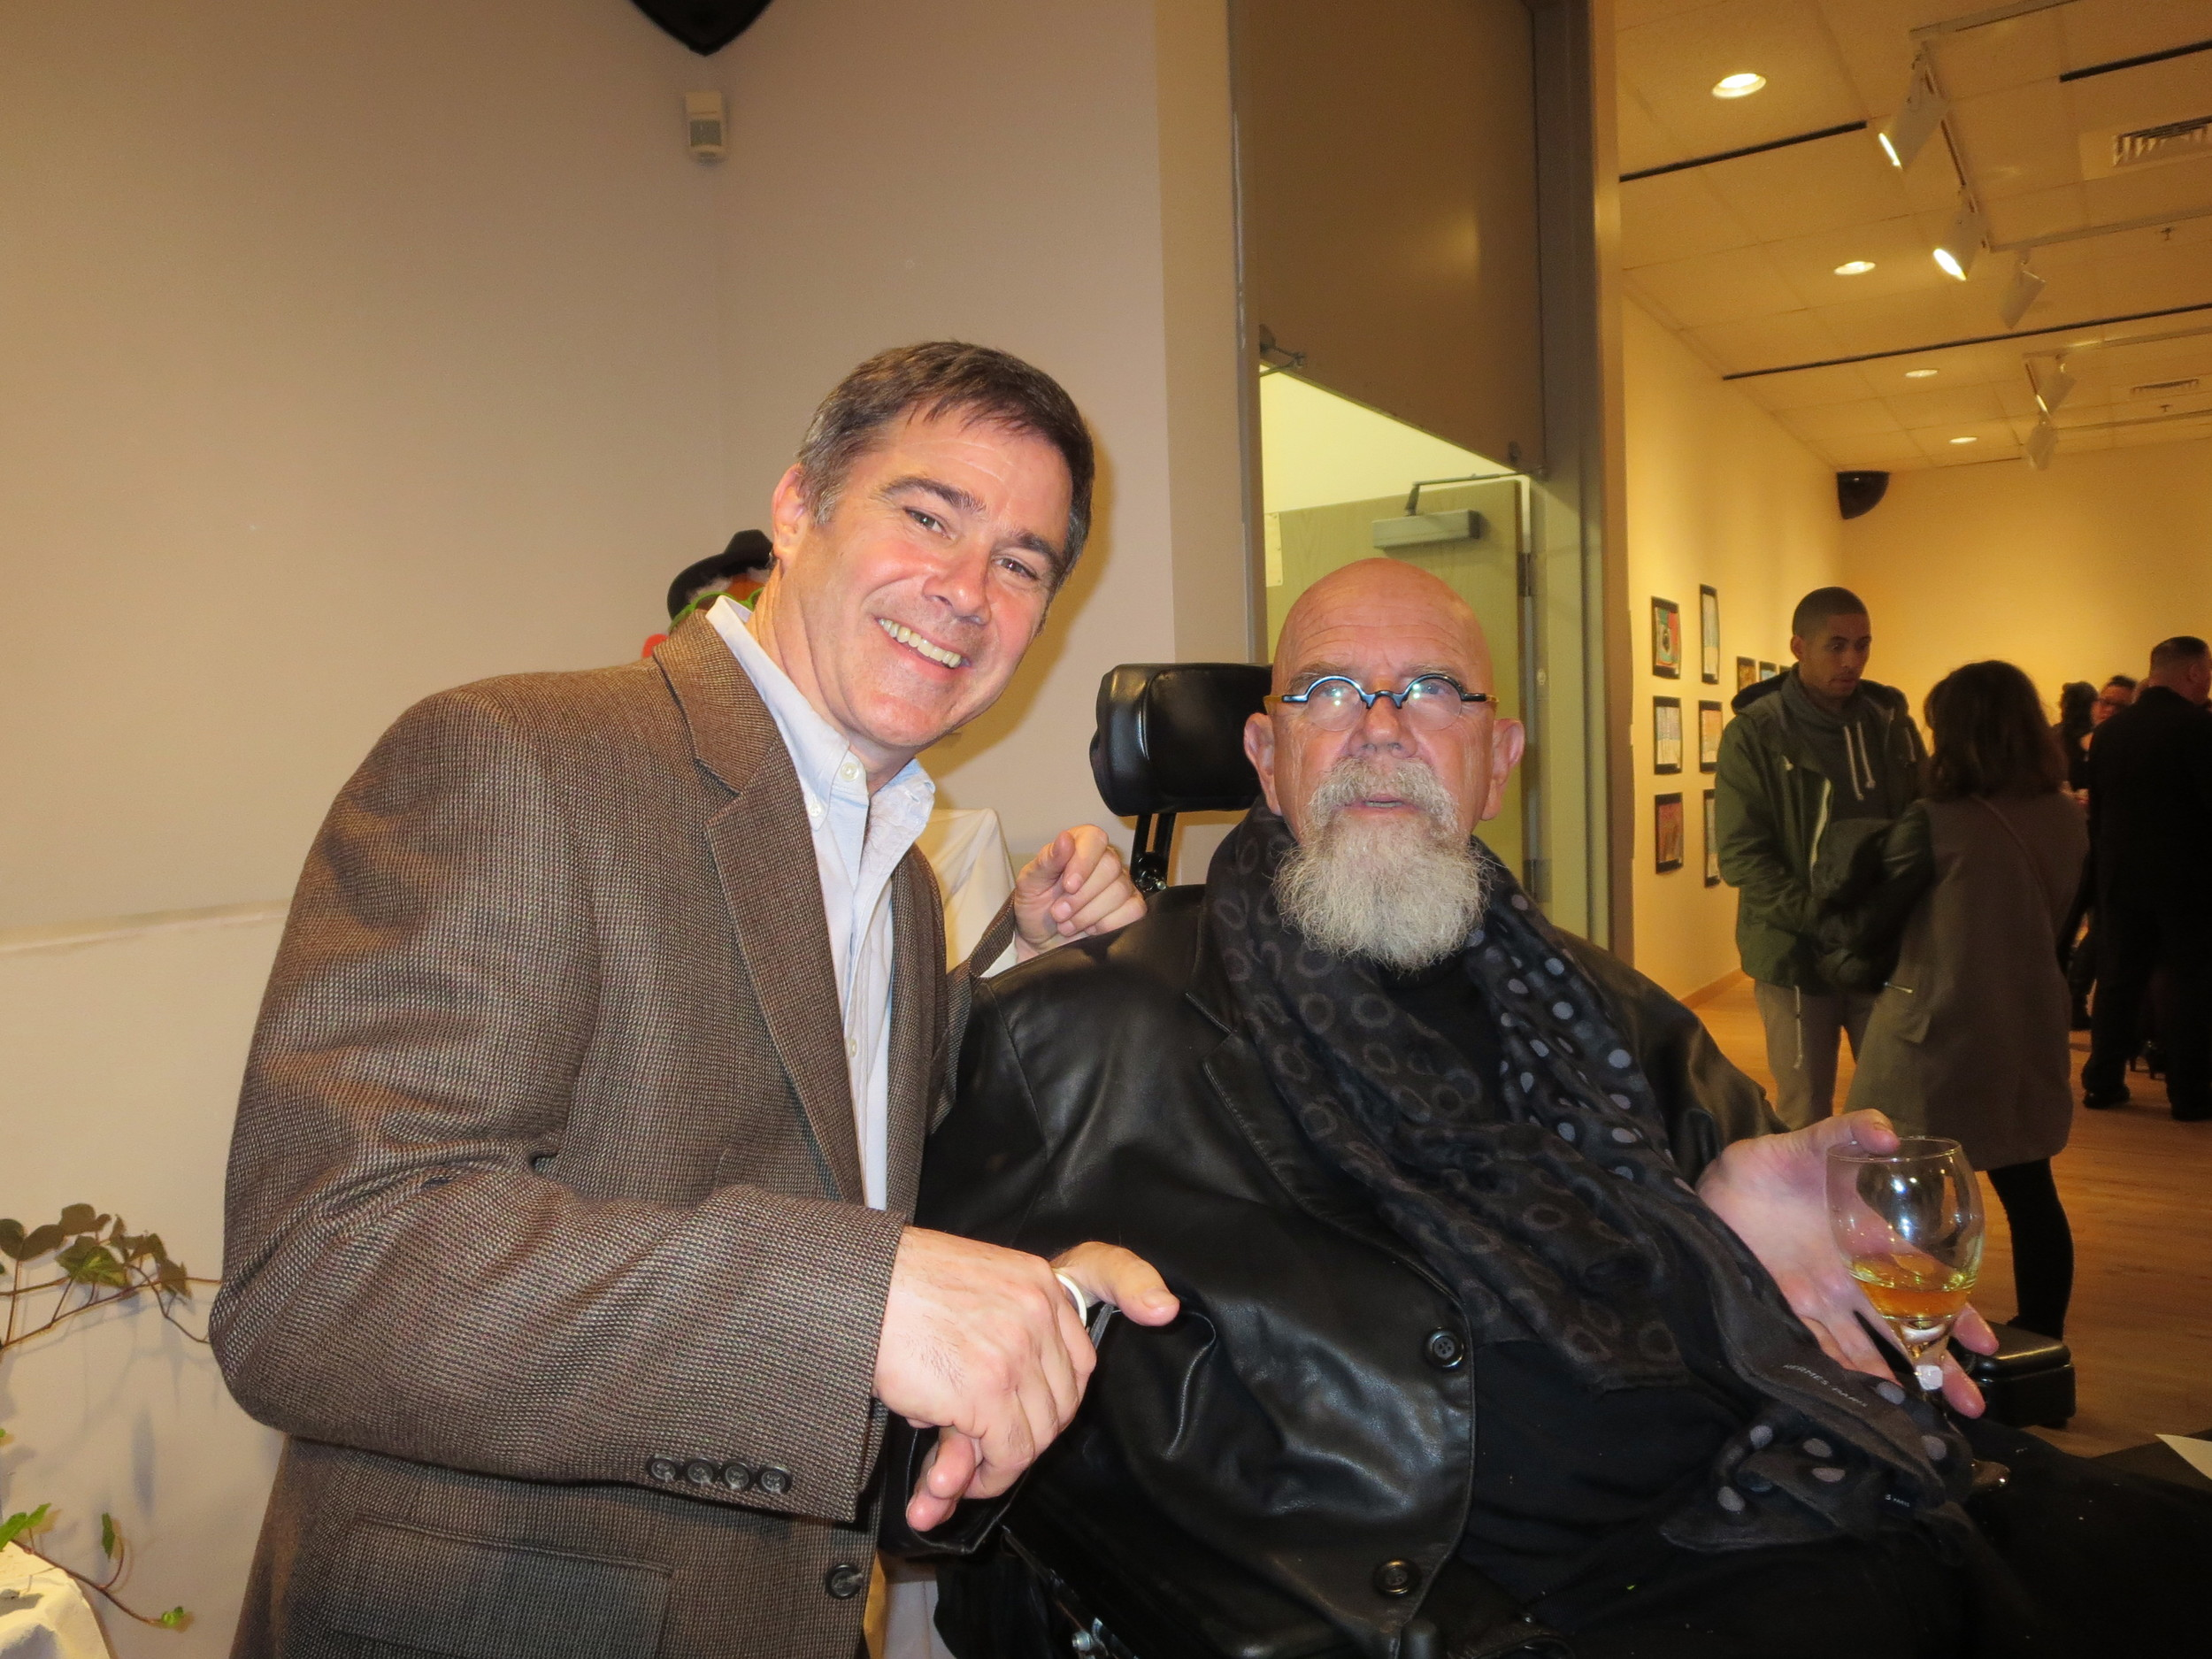 Chuck Close in the Burt Chernow Gallery with me at the Turnaround Kids art opening